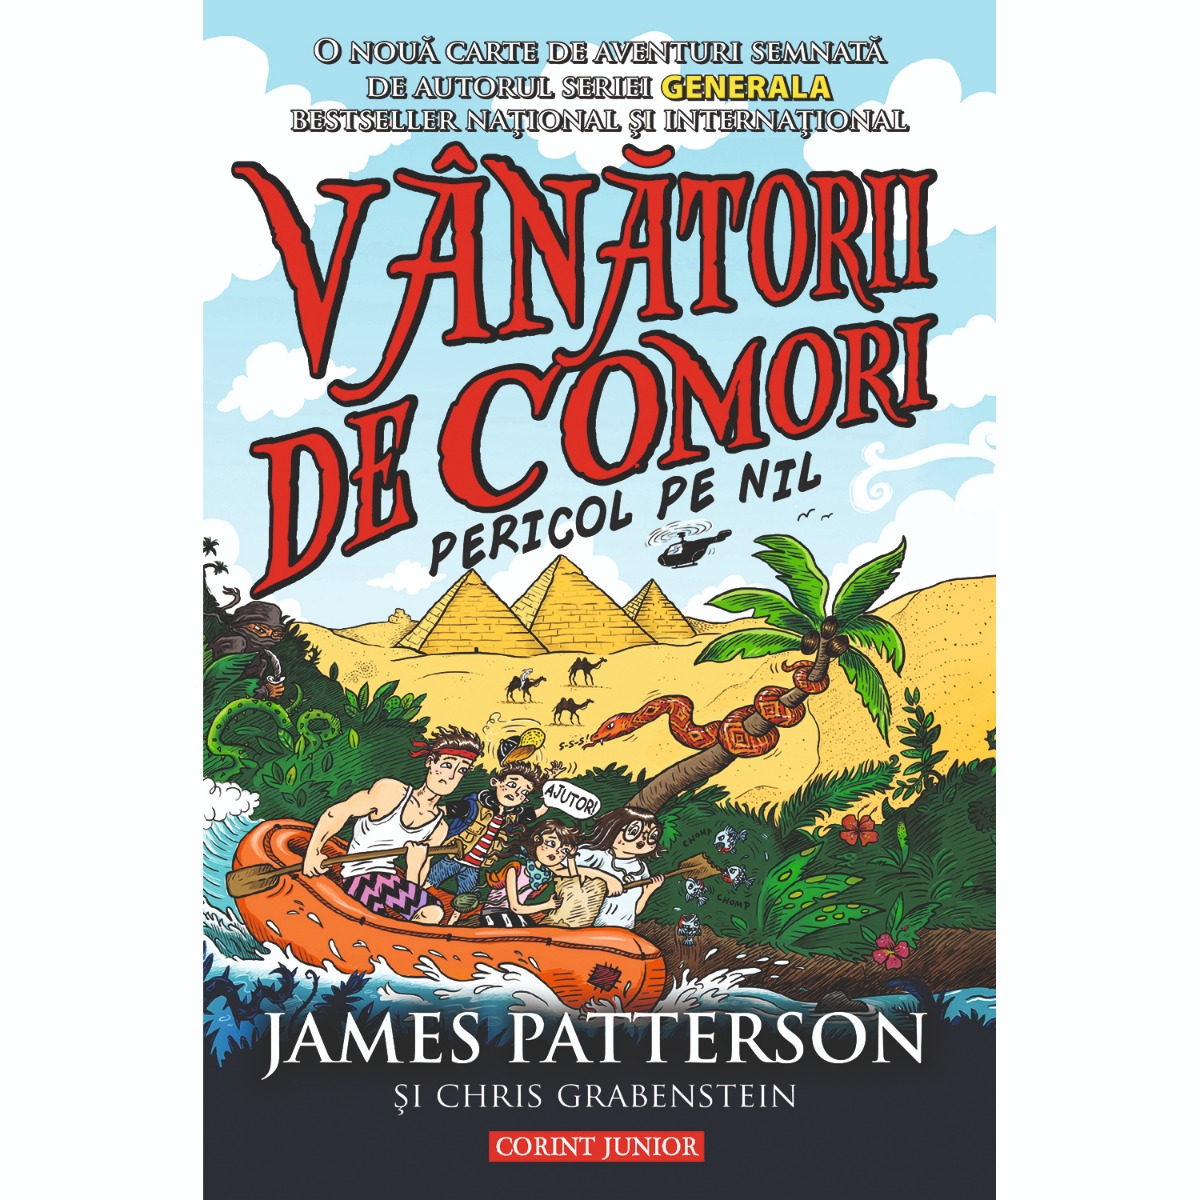 Carte Editura Corint, Vanatorii de comori vol. 2 Pericol pe Nil, James Patterson, Chris Grabenstein